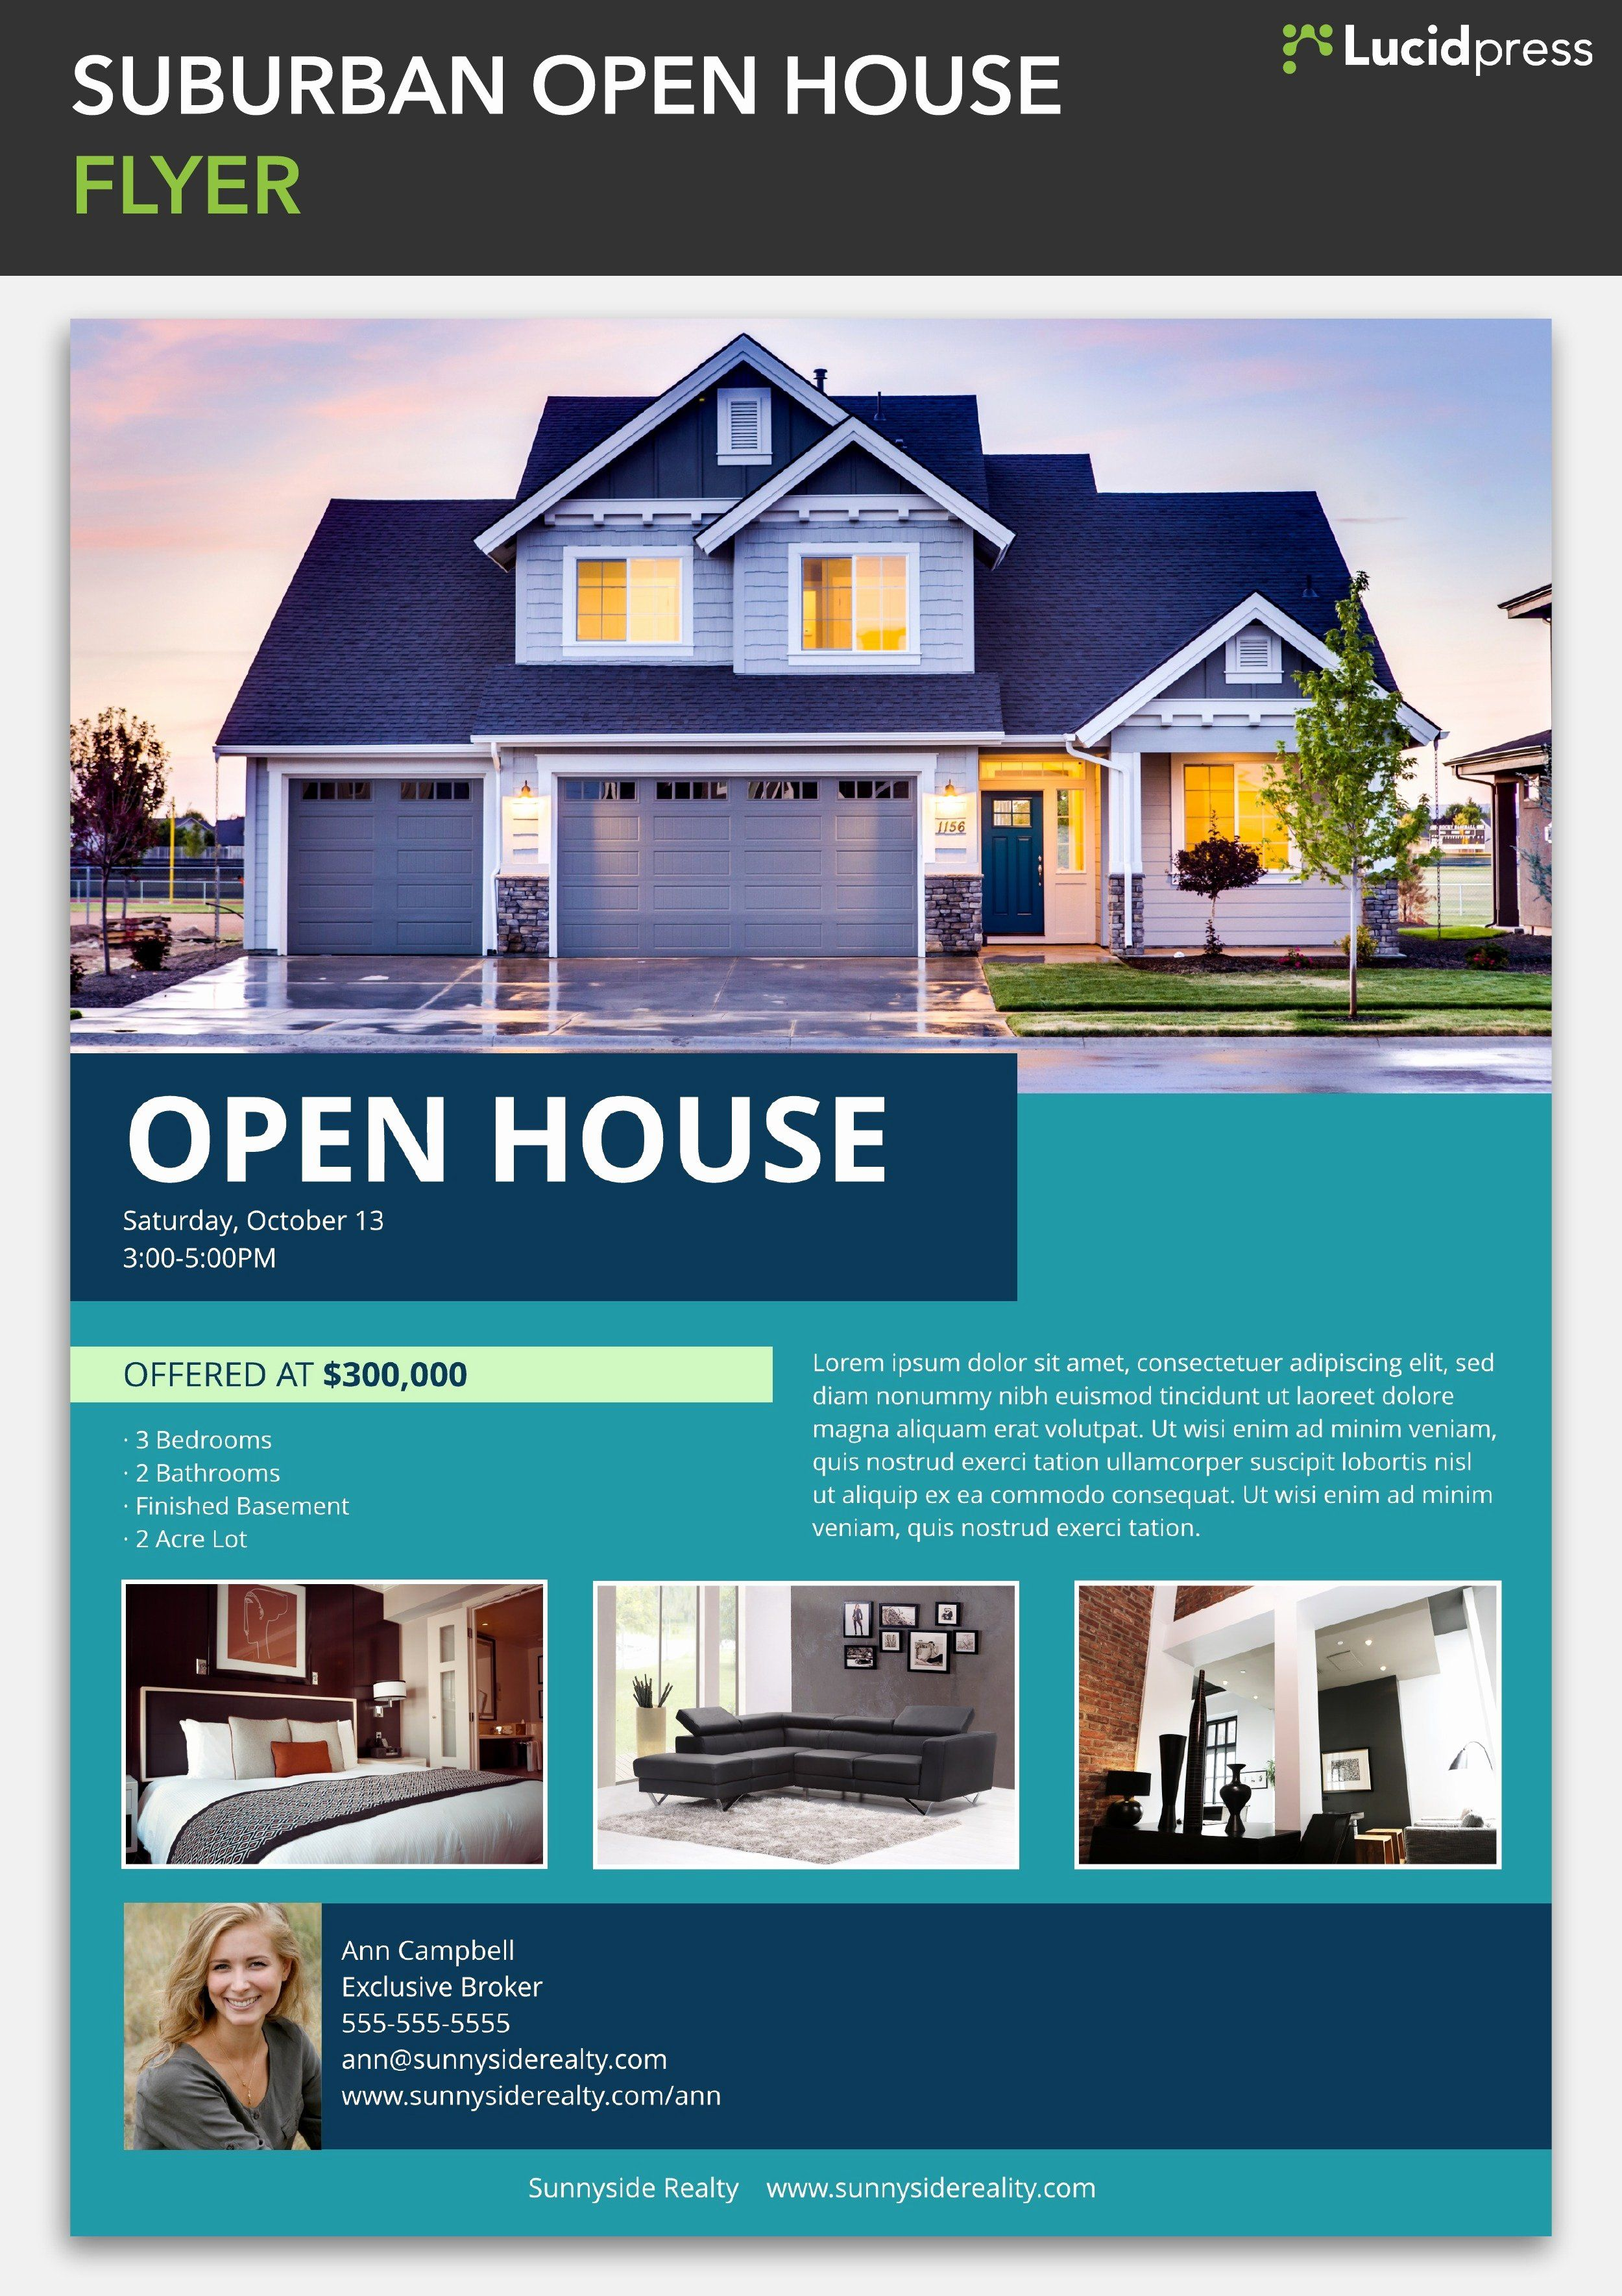 Open House Flyers Template Awesome How To Build A Social Media Campaign For Real Estate Open House Real Estate Open House Open House Brochure